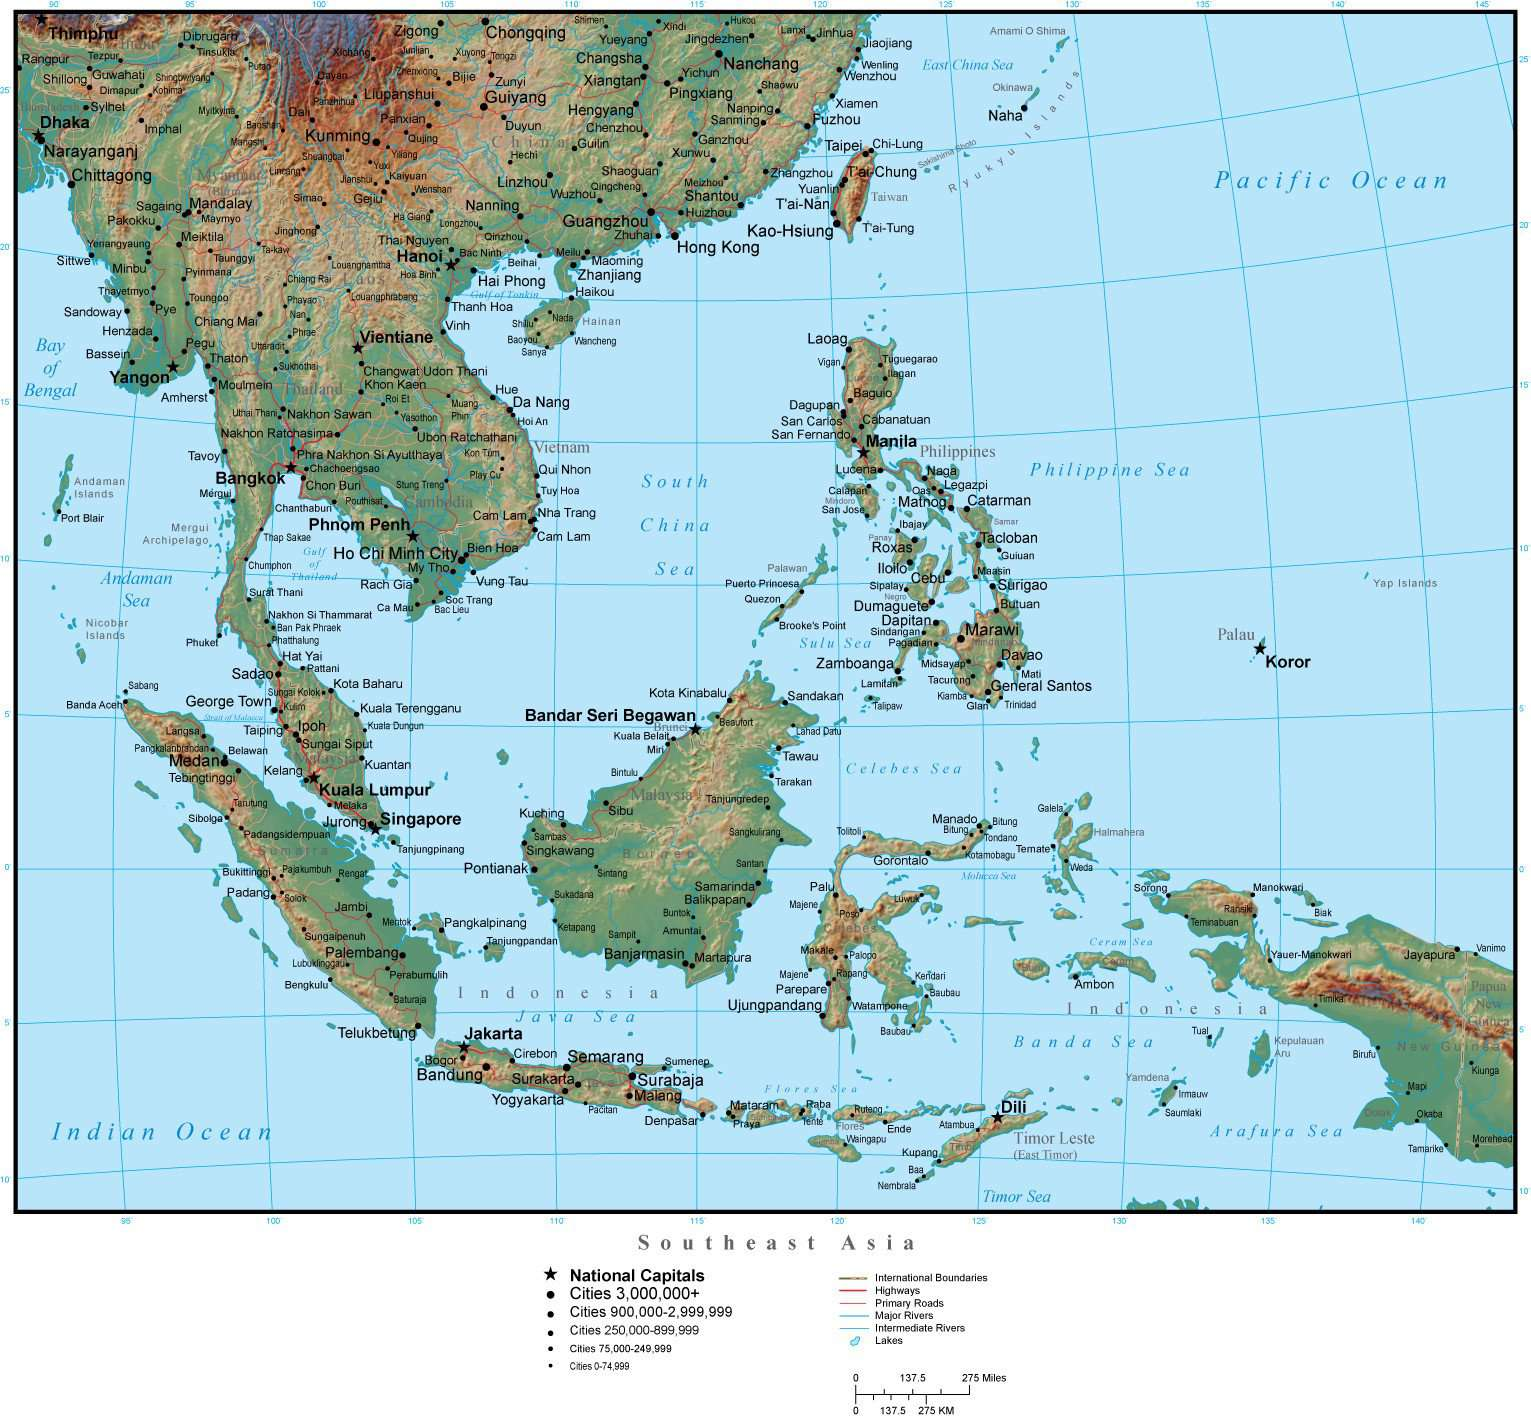 Map Of Asia Land Features.Southeast Asia Map Plus Terrain With Countries Capitals Cities Roads And Water Features